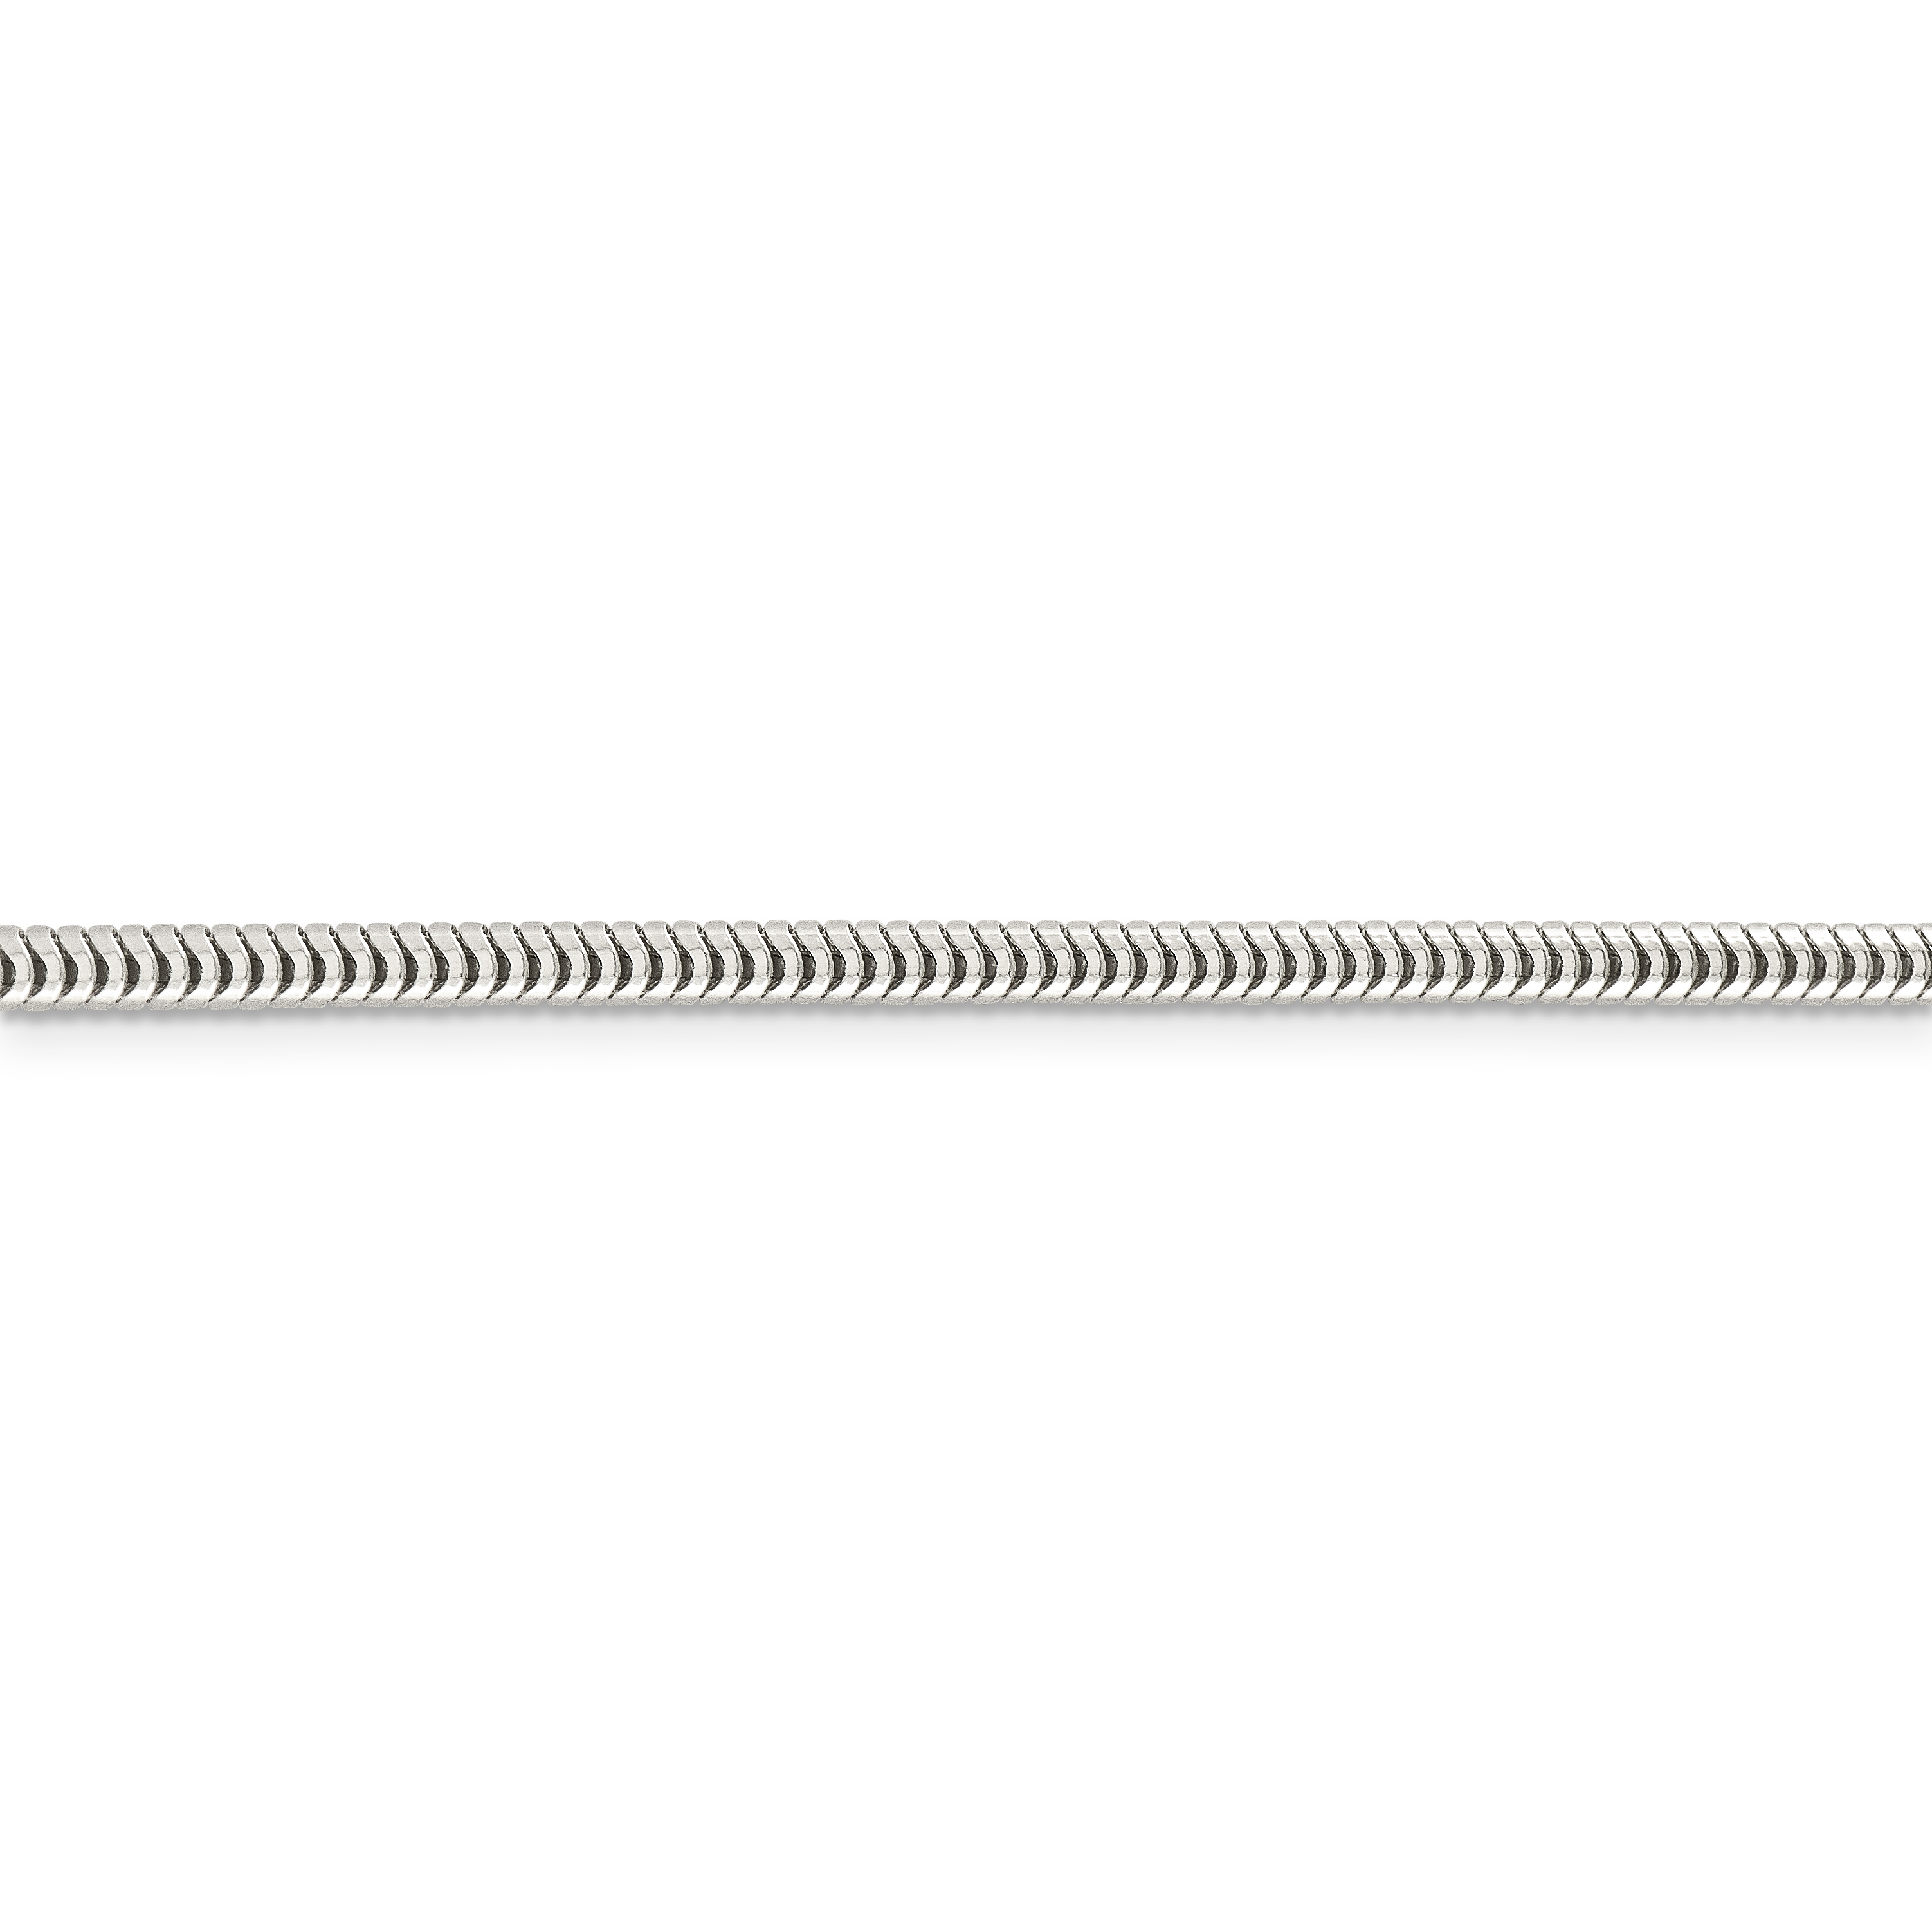 925 Sterling Silver 3mm Round Snake Chain Necklace 24 Inch Pendant Charm Fine Jewelry Gifts For Women For Her - image 1 de 5